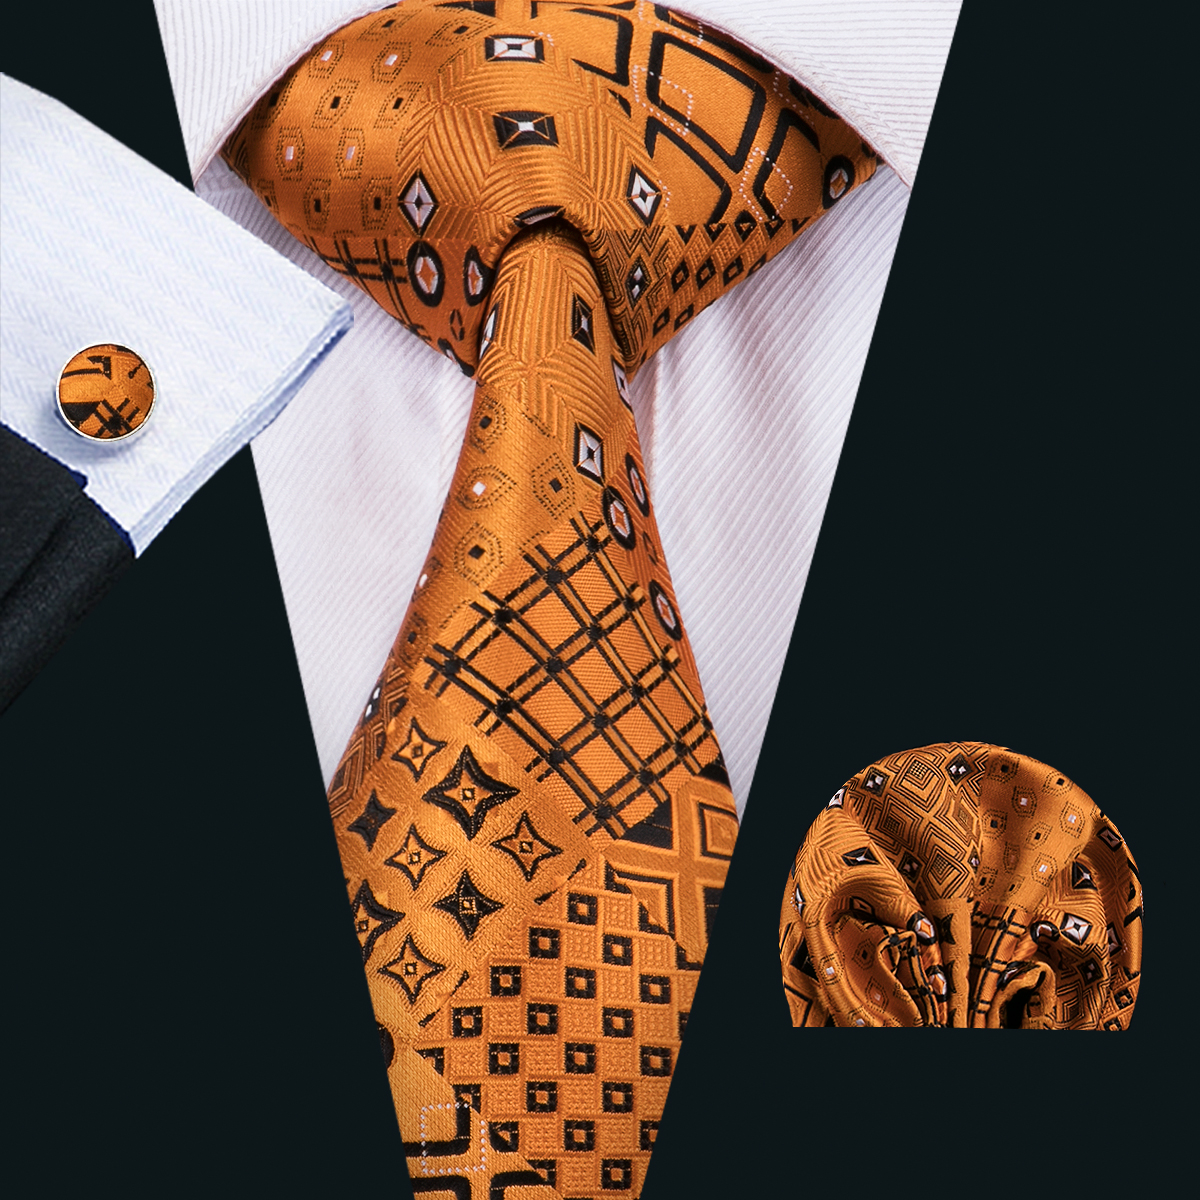 C-1517 Luxury Design Brown Fashion Ties For Men High Quality Silk Neck Tie Pocket Square Hanky Cufflinks Set Men's Necktie